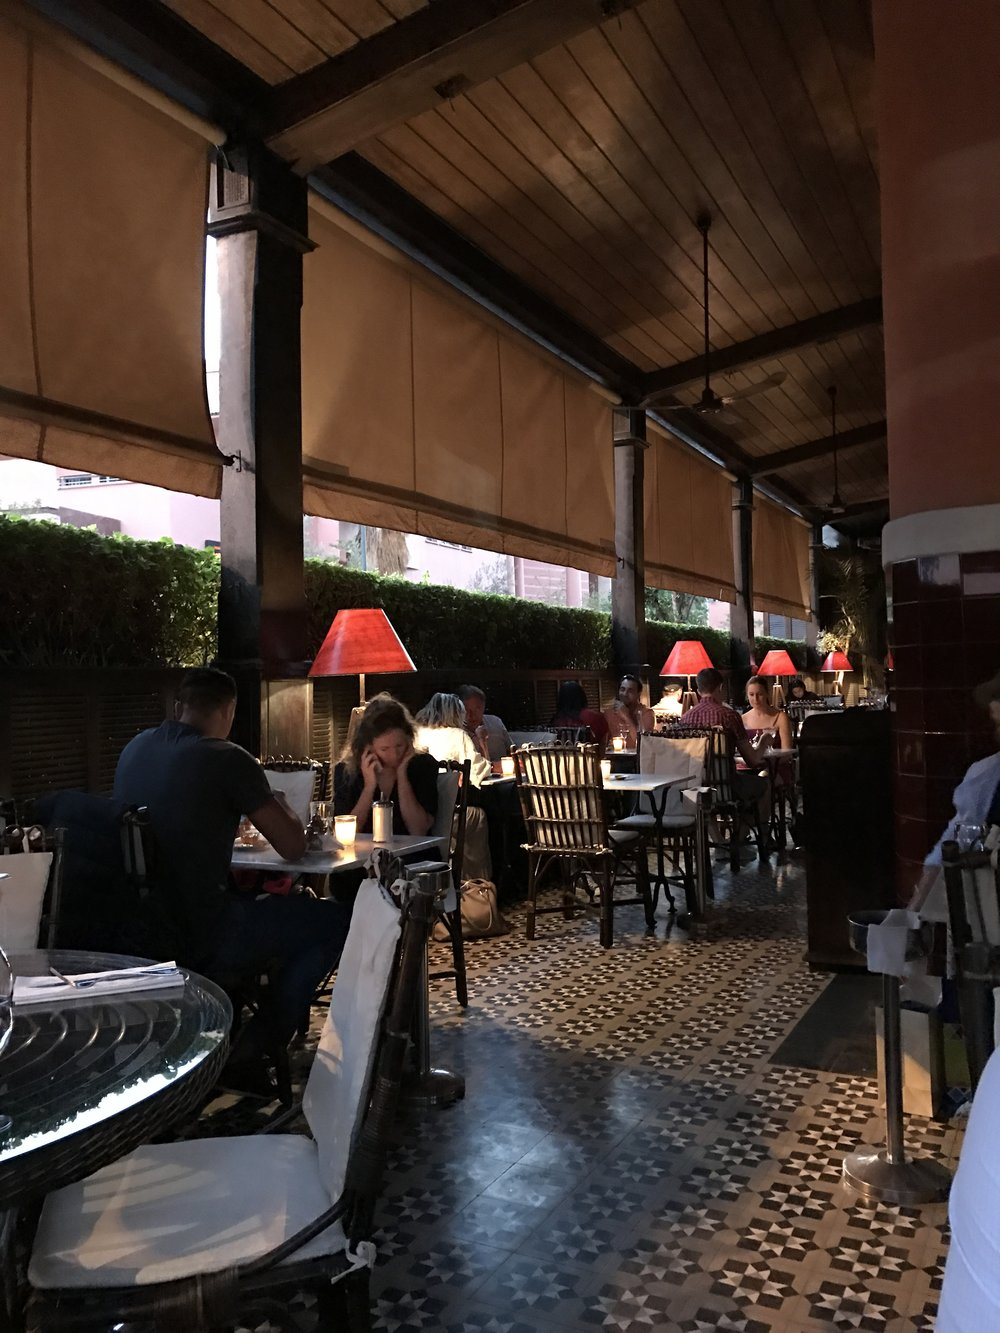 The Grande Cafe de la Poste - Like something from a movie, this historic building brings old world French style (read;cafe chairs, double staircases, deep rich wood ceilings, classic jazz)with the classic Moroccan food and feel.